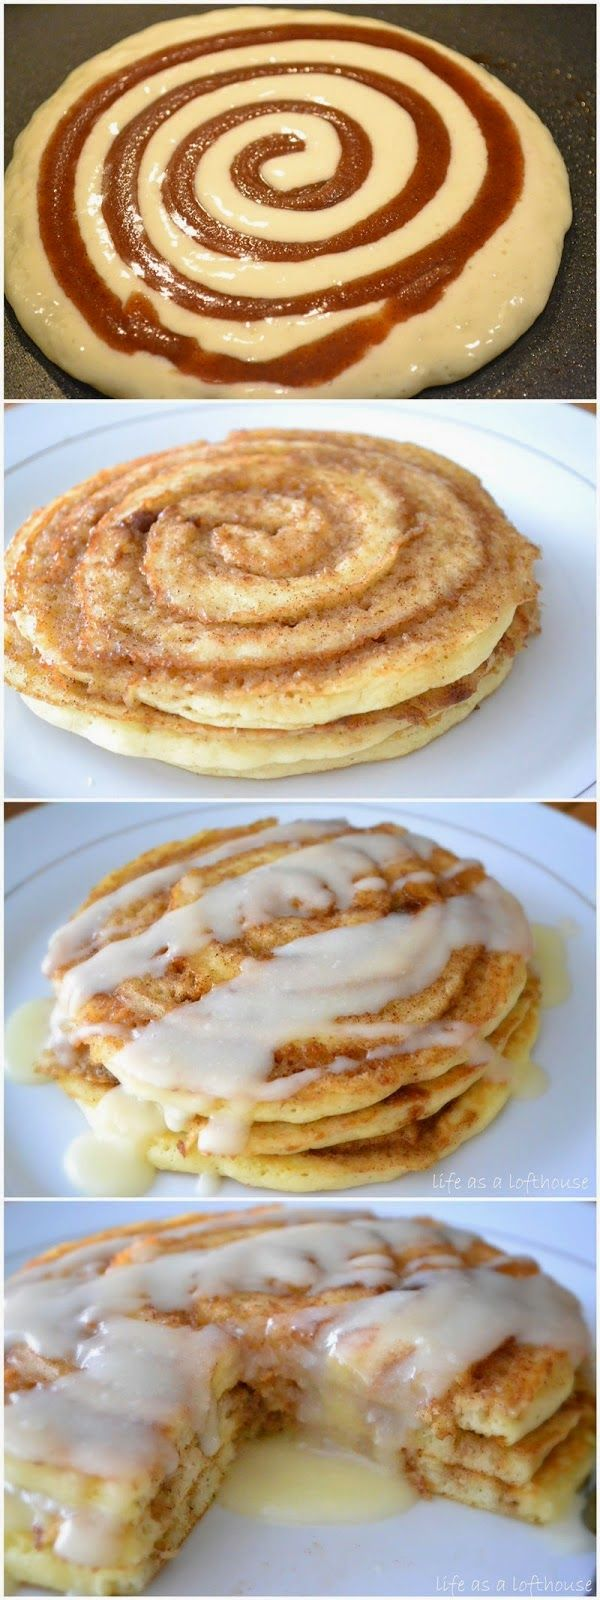 67 best Pancakes and Waffles images on Pinterest